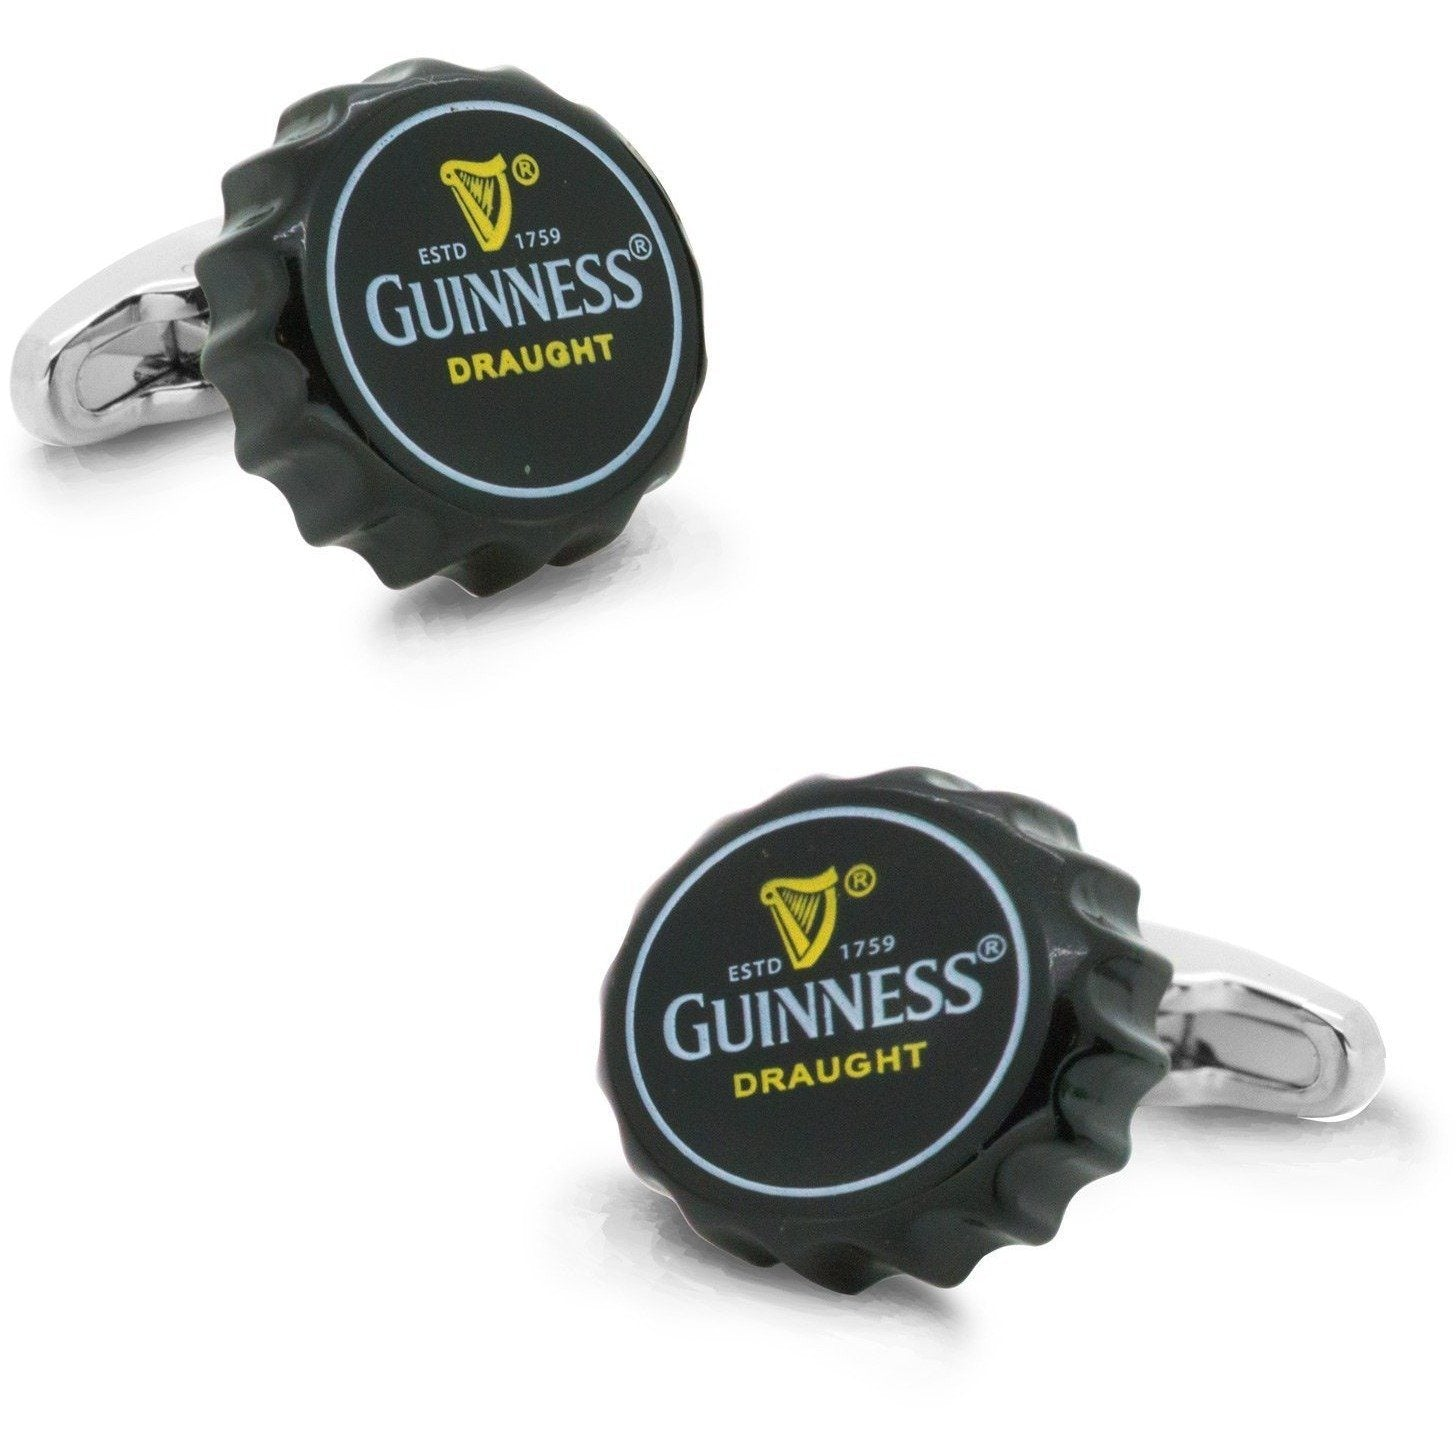 Black Guinness Beer Cap Cufflinks, Novelty Cufflinks,  CL6011, Cufflinks, Mens Cufflinks, Cuffed, Clinks, Clinks Australia